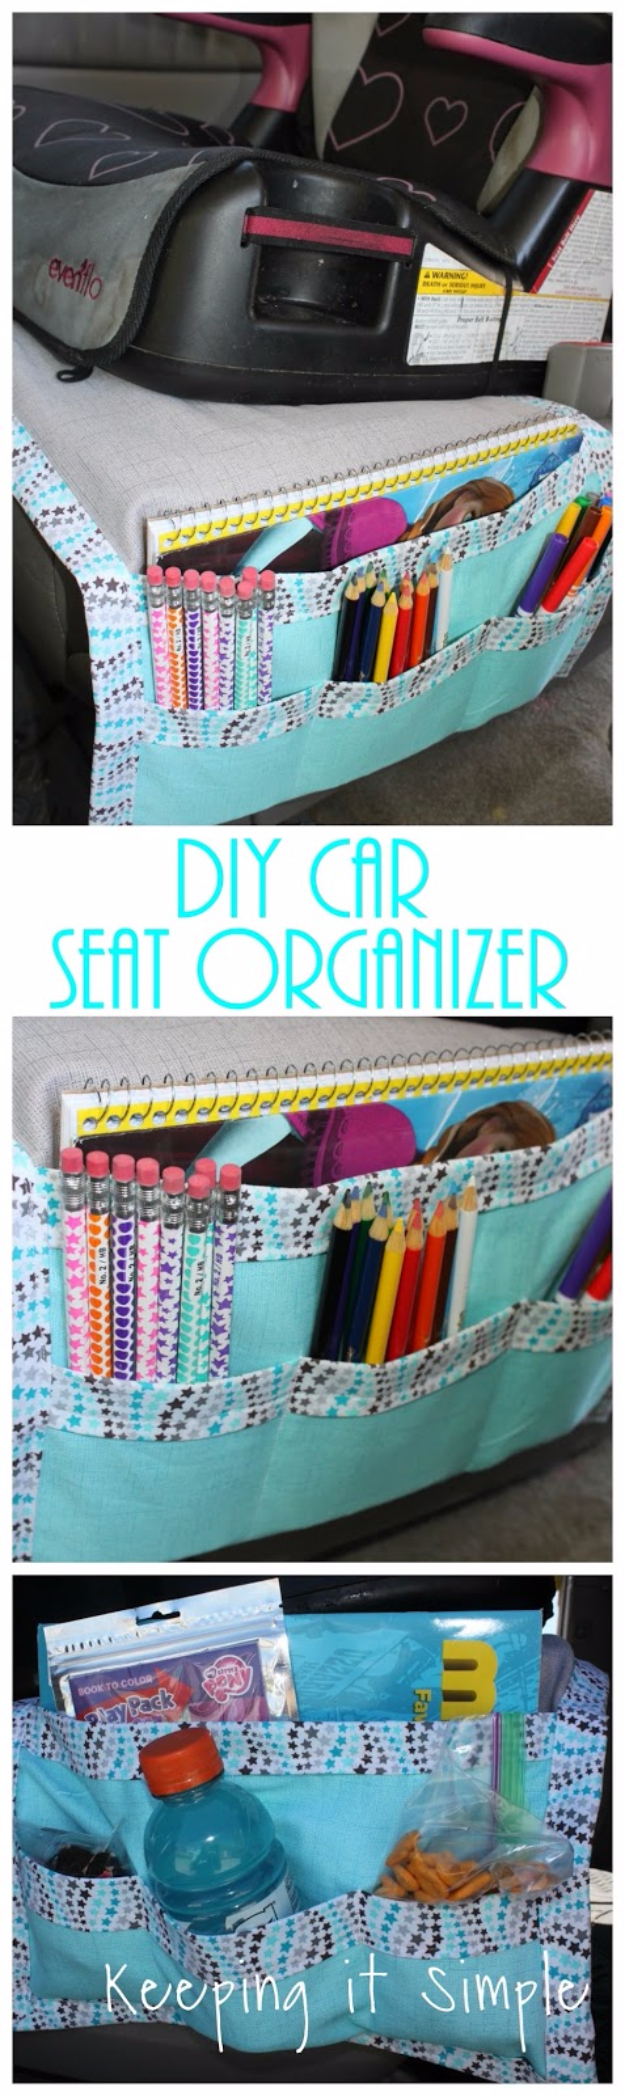 DIY Car Accessories and Ideas for Cars - DIY Car Seat Organizer - Interior and Exterior, Seats, Mirror, Seat Covers, Storage, Carpet and Window Cleaners and Products - Decor, Keys and Iphone and Tablet Holders - DIY Projects and Crafts for Women and Men